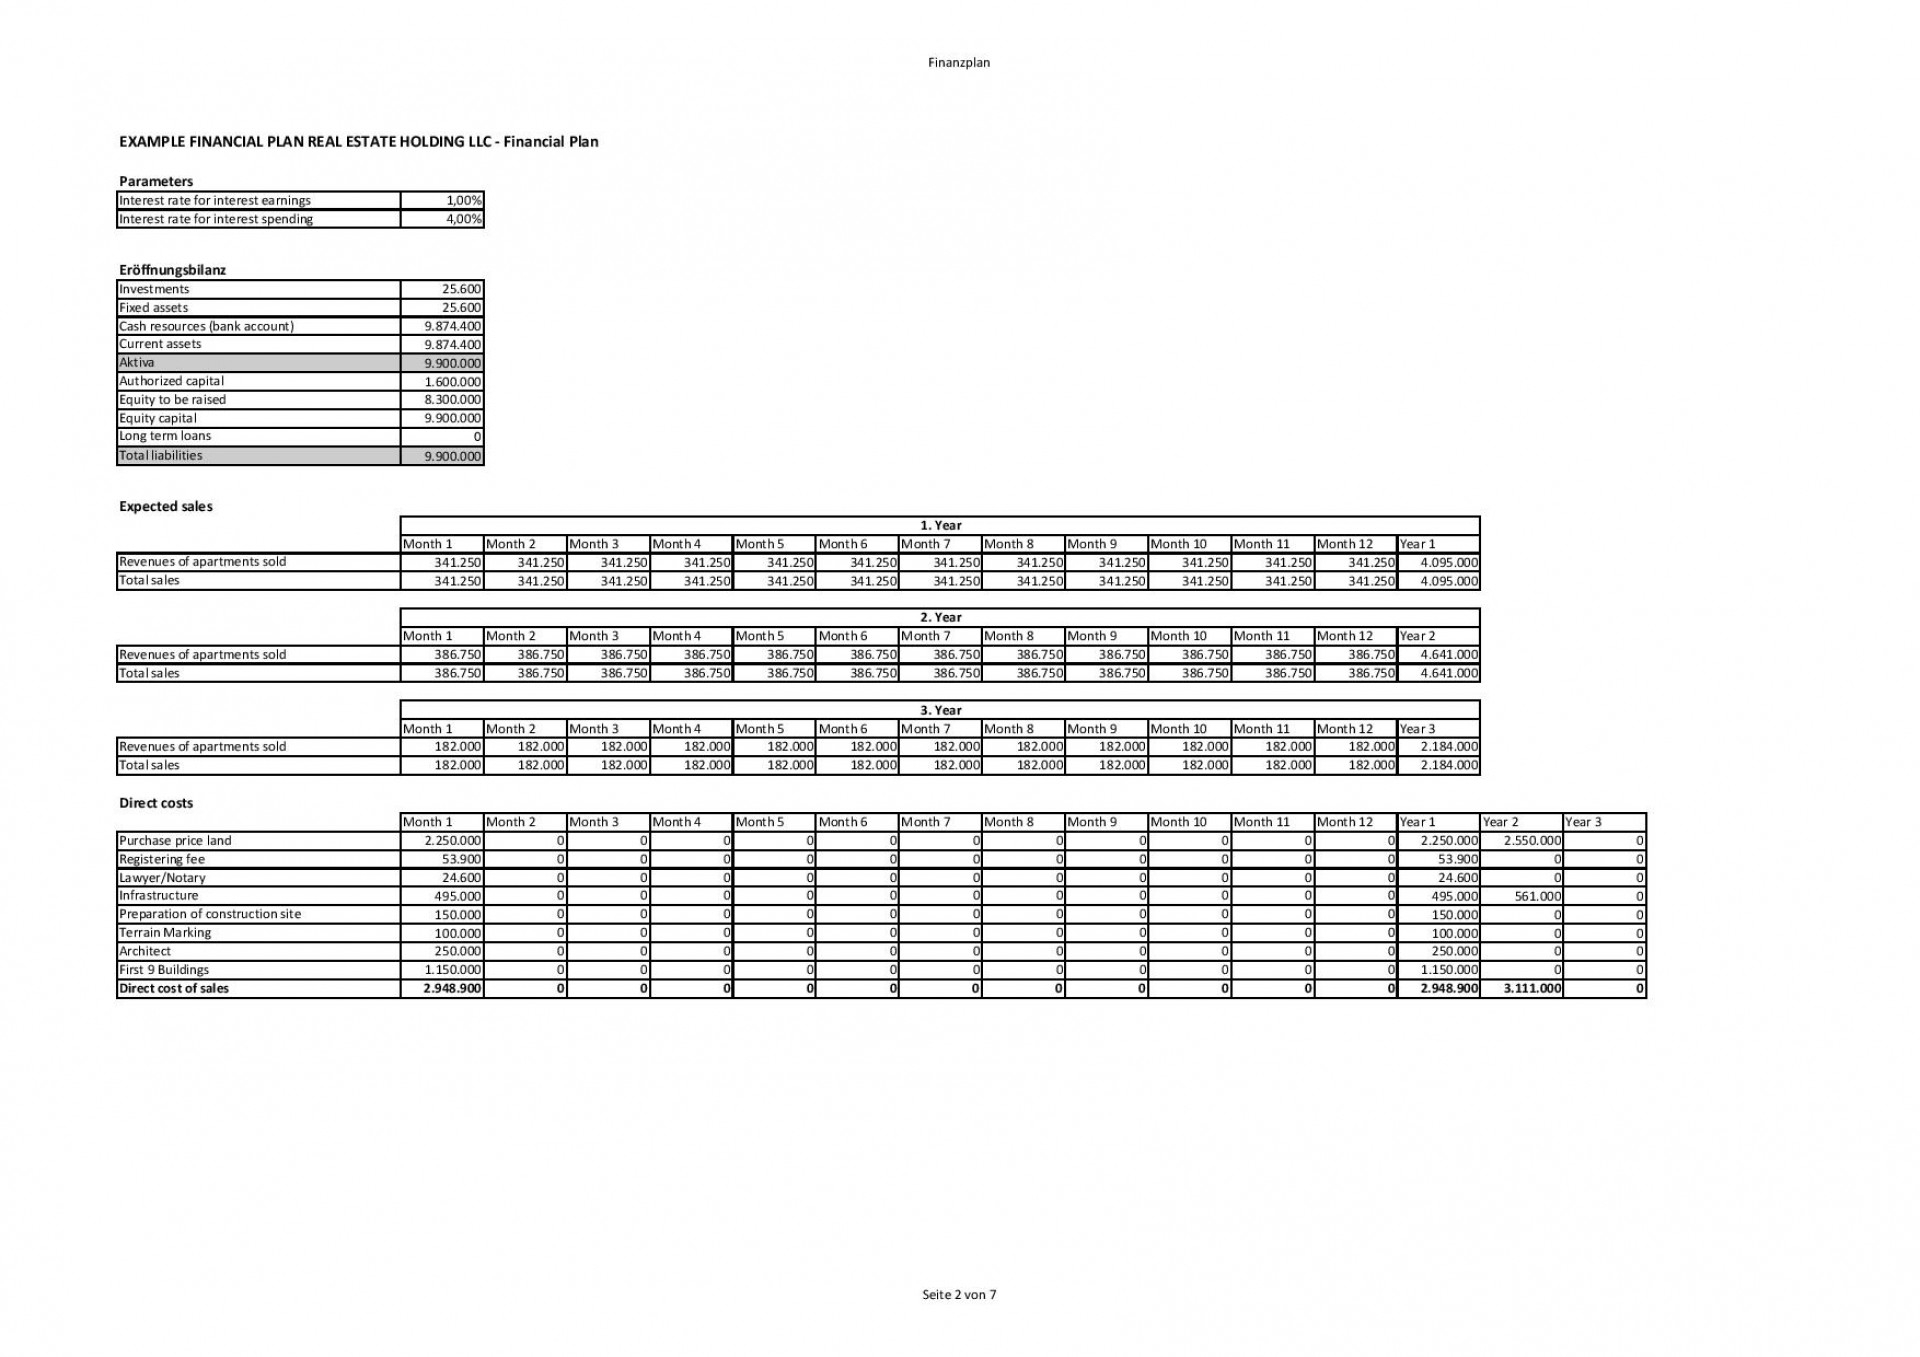 Financial Planning Spreadsheet Excel Free Regarding 023 Personal Finance Plan Template Financial Planning Spreadsheet